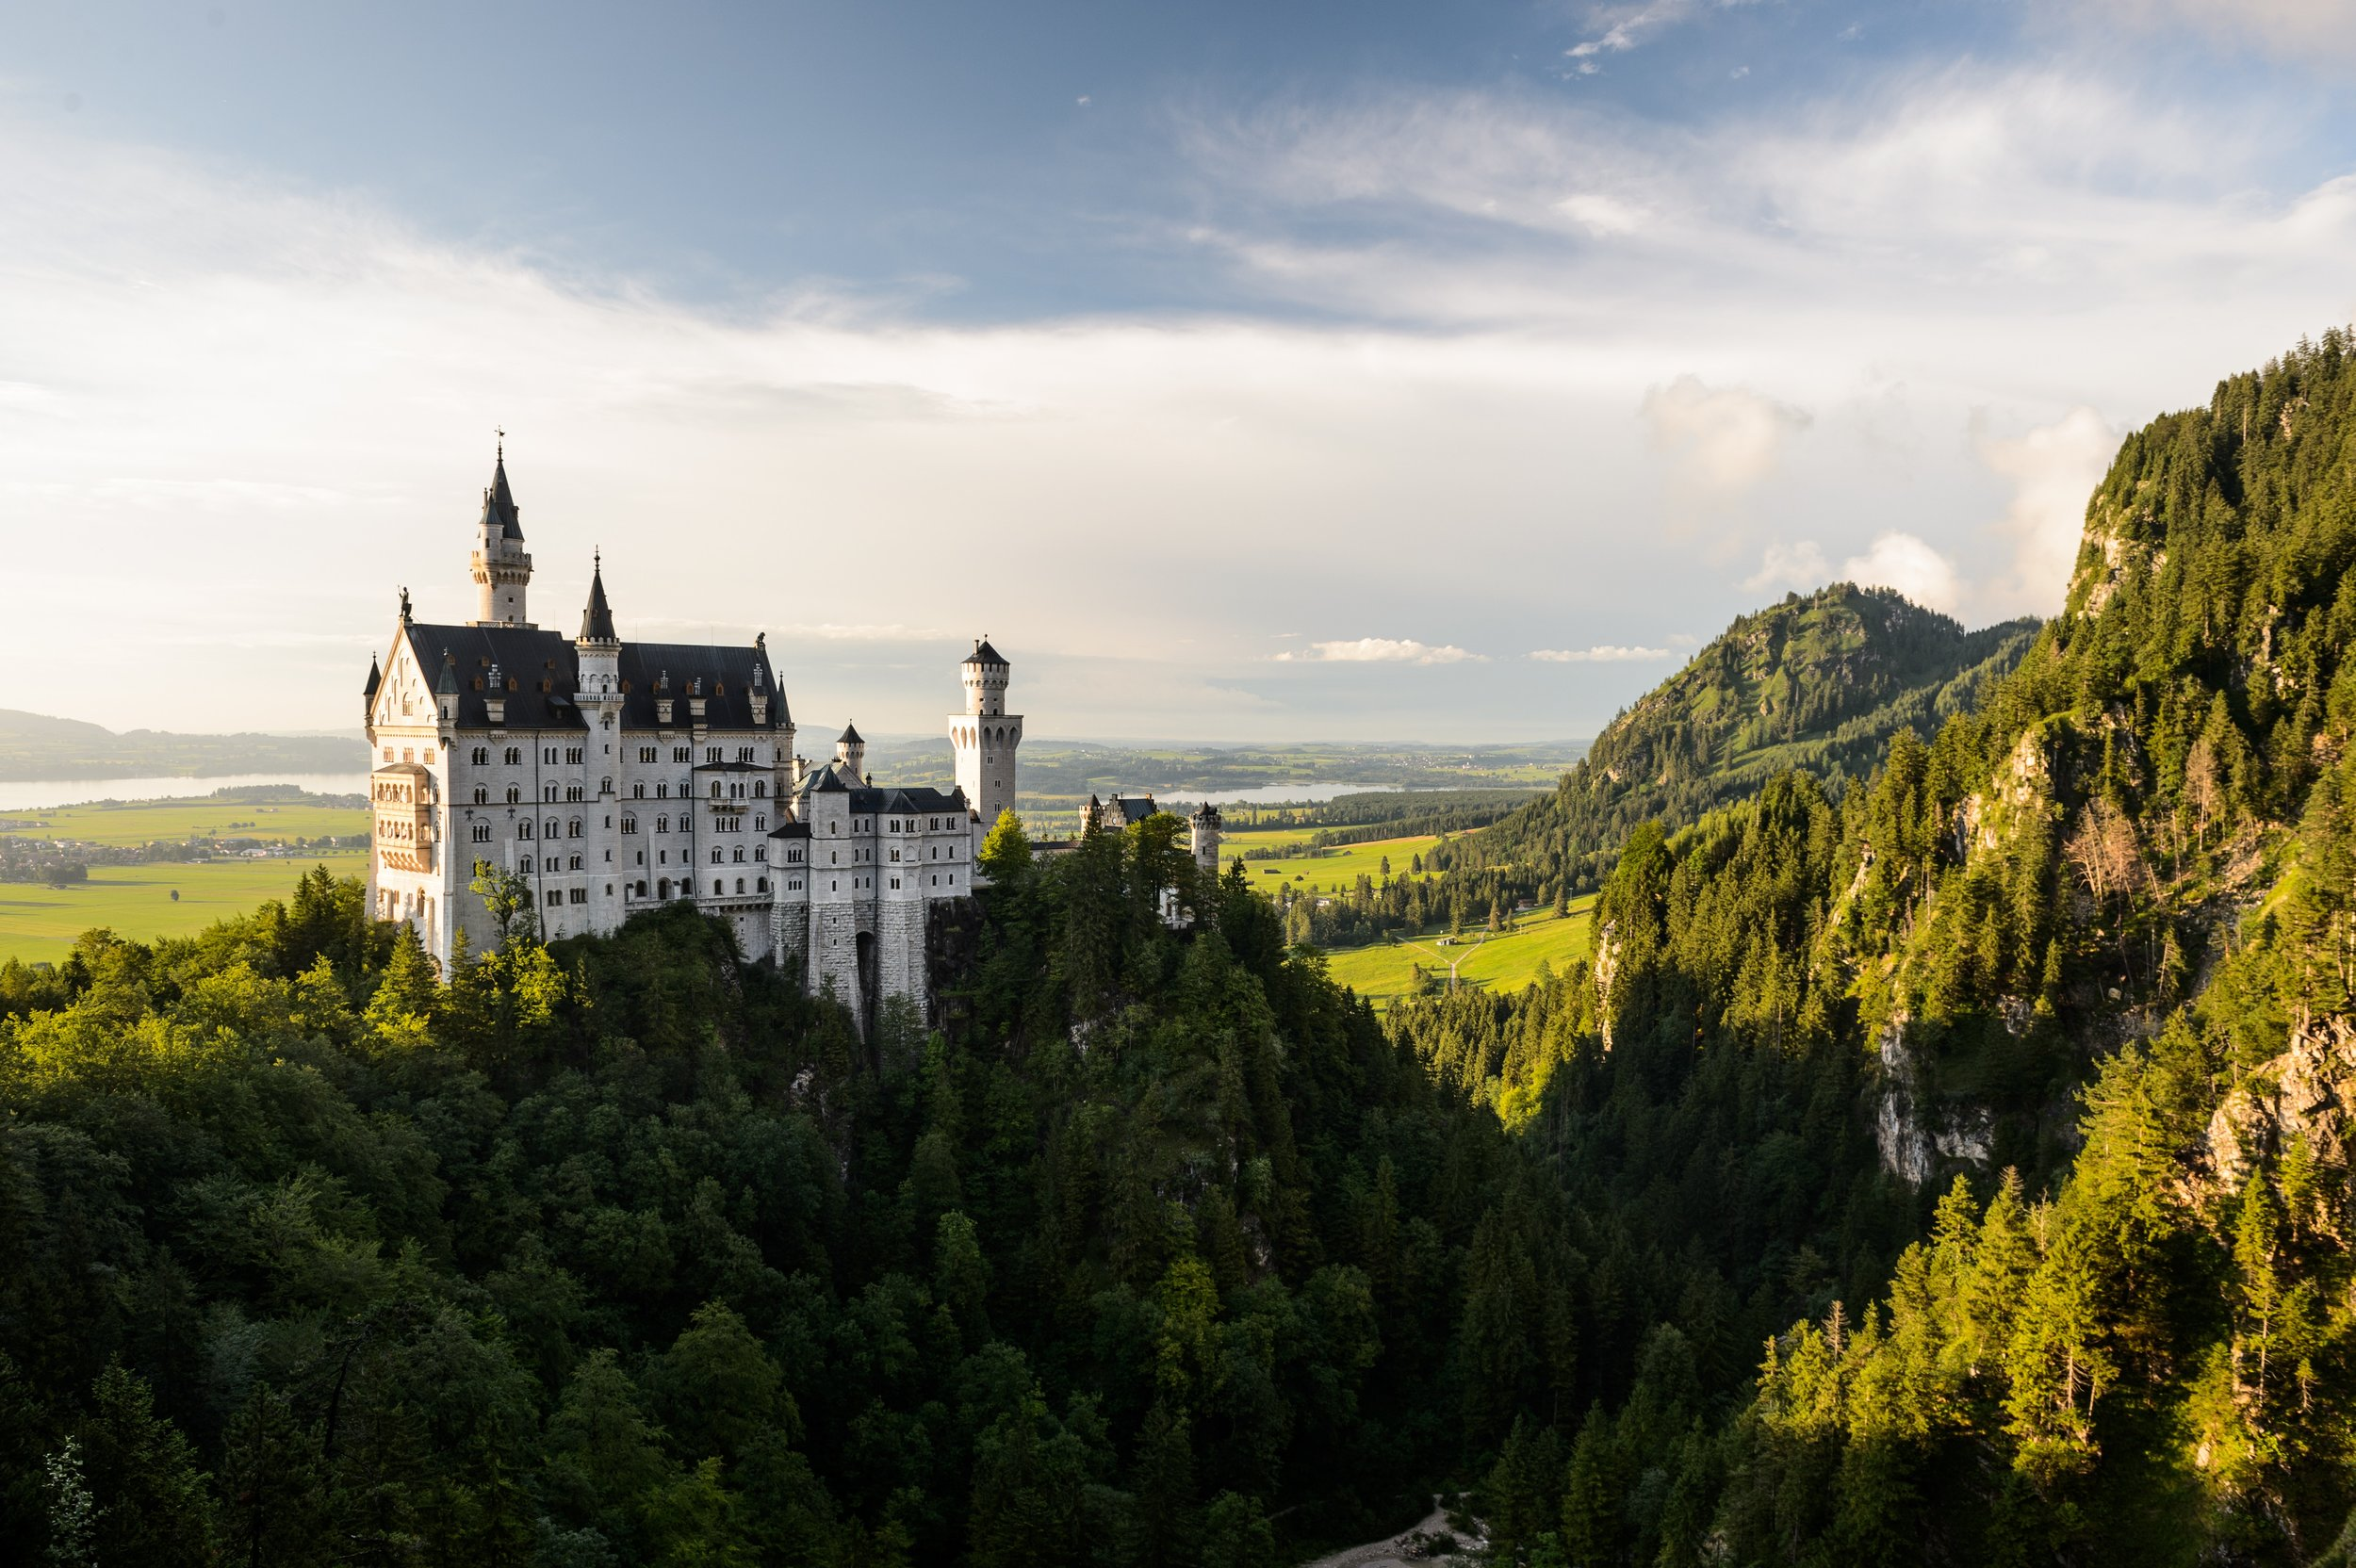 Neuschwanstein-Castle-Schwangau-Germany.jpg